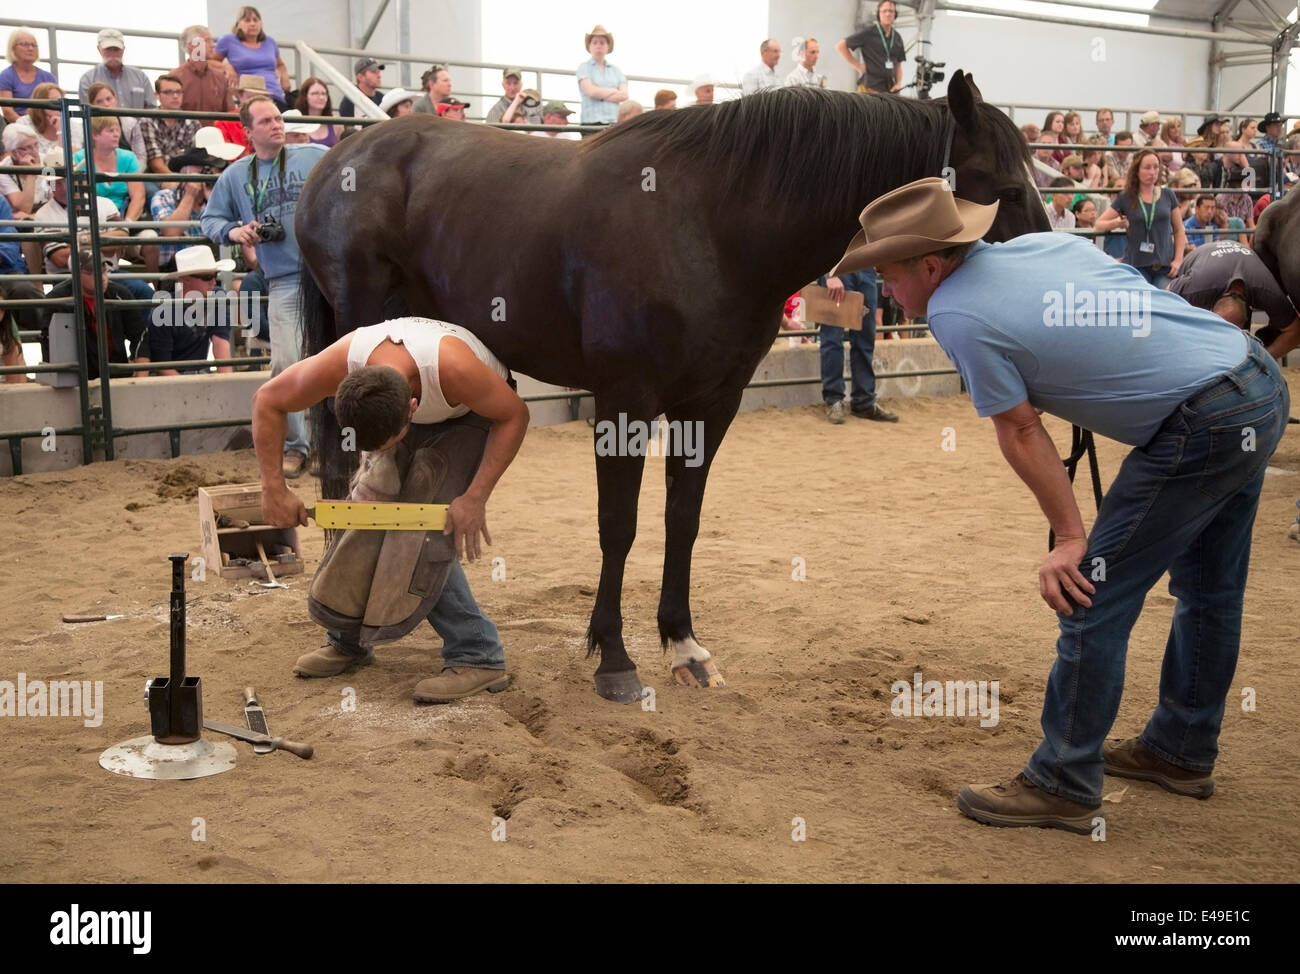 Calgary, Alberta, Canada. 06th July, 2014. Farrier finishes shoeing a horse as he competes in the final round of - Stock Image